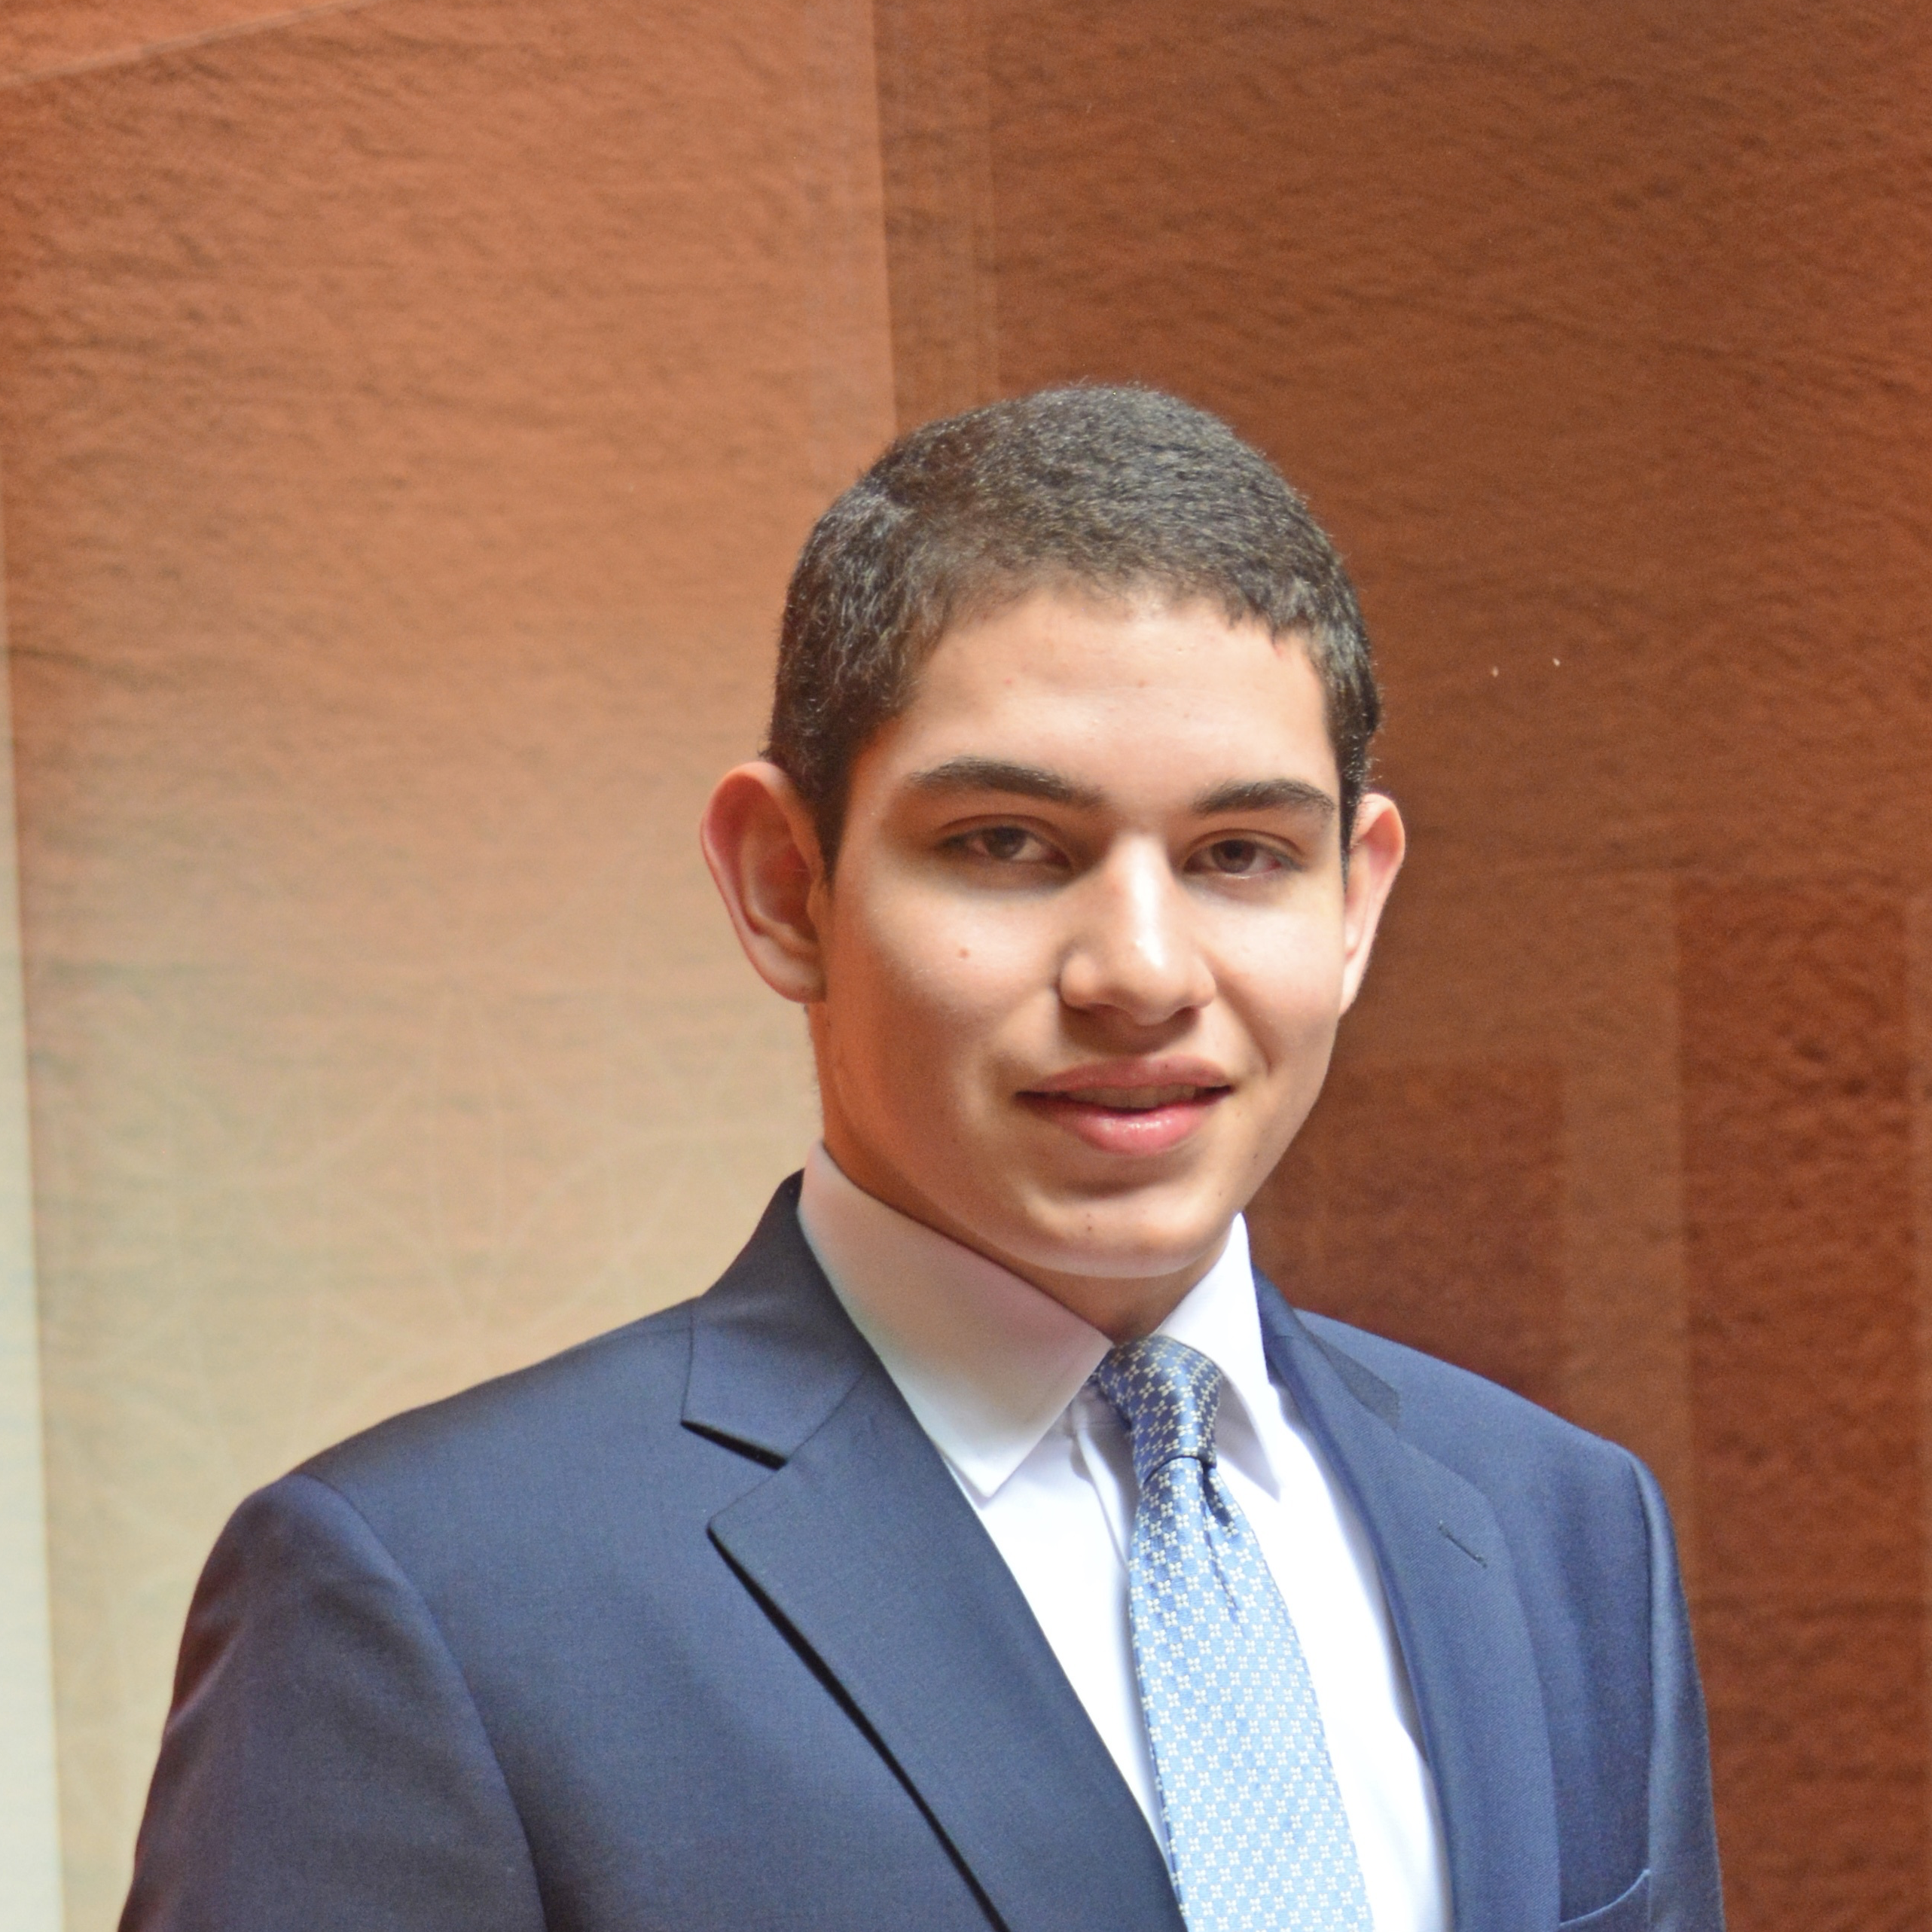 David Varela is a sophomore from Bogota, Colombia. Pursuing a Bachelor's Degree in Business Administration with a dual concentration in International Business and in Entrepreneurship and Innovation with a Minor in Sustainability.